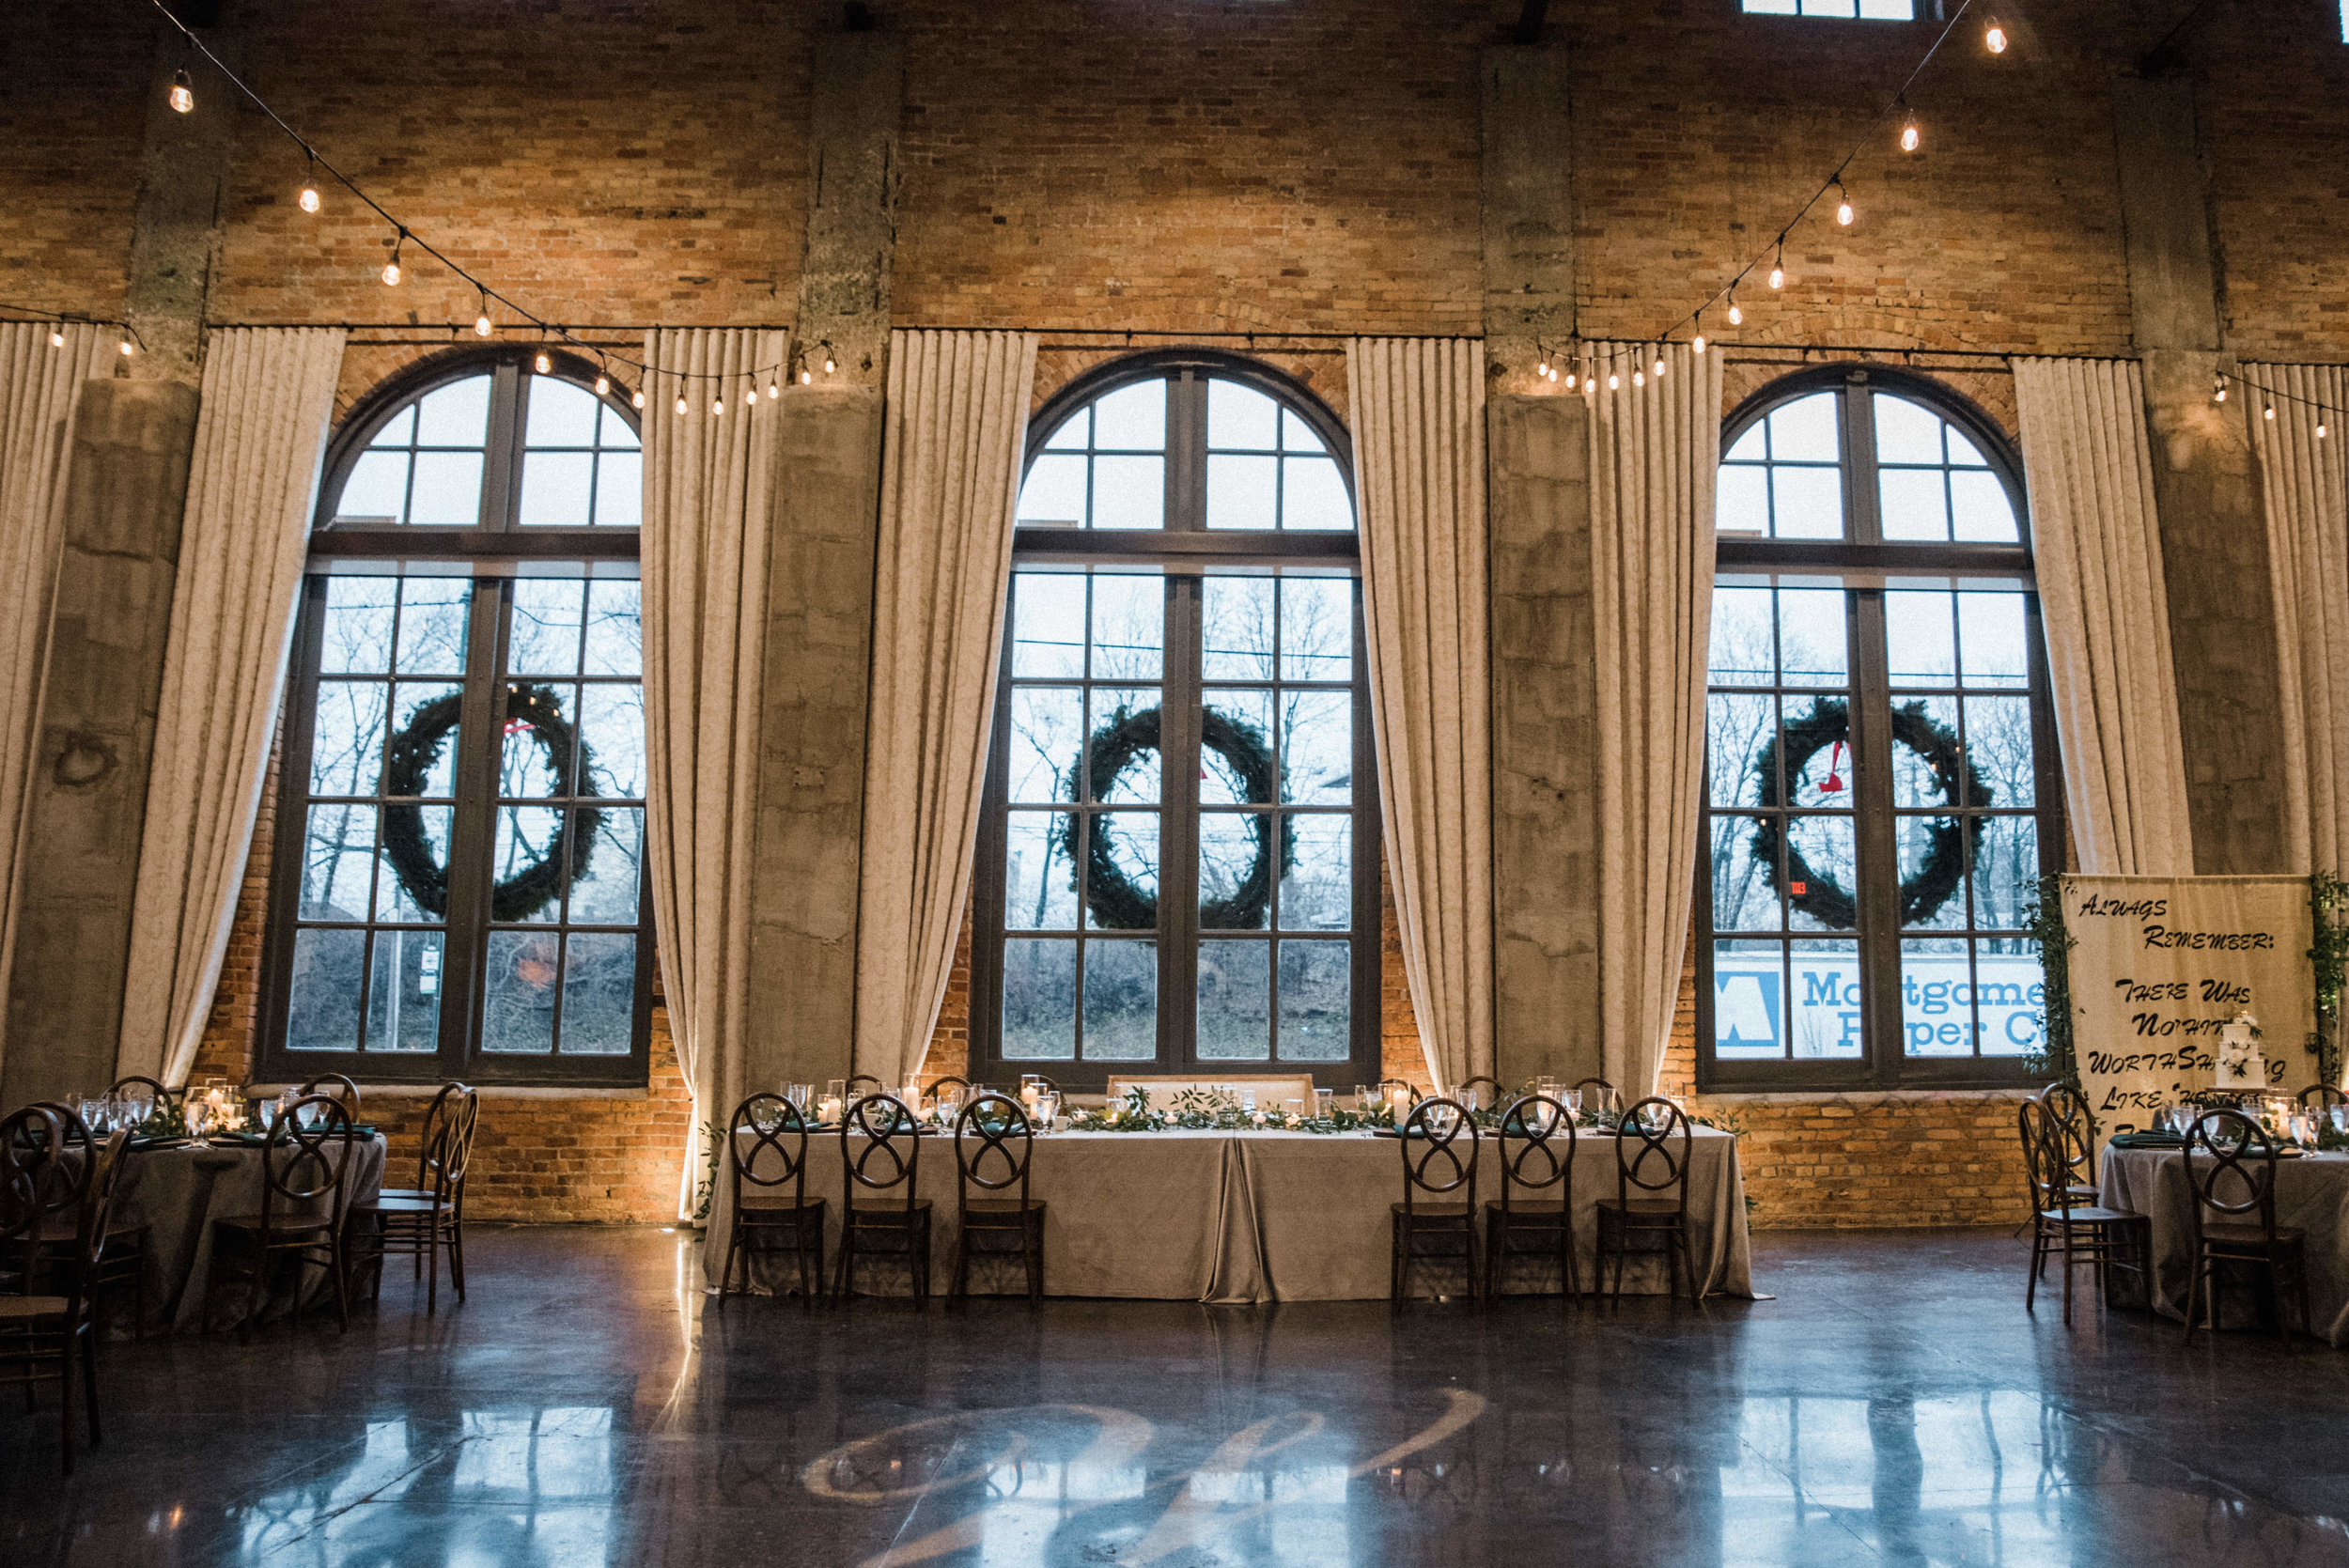 Steam Plant wedding, Dayton wedding, fine art wedding, Dayton wedding venue, what to do before you get a wedding venue, dayton wedding planner